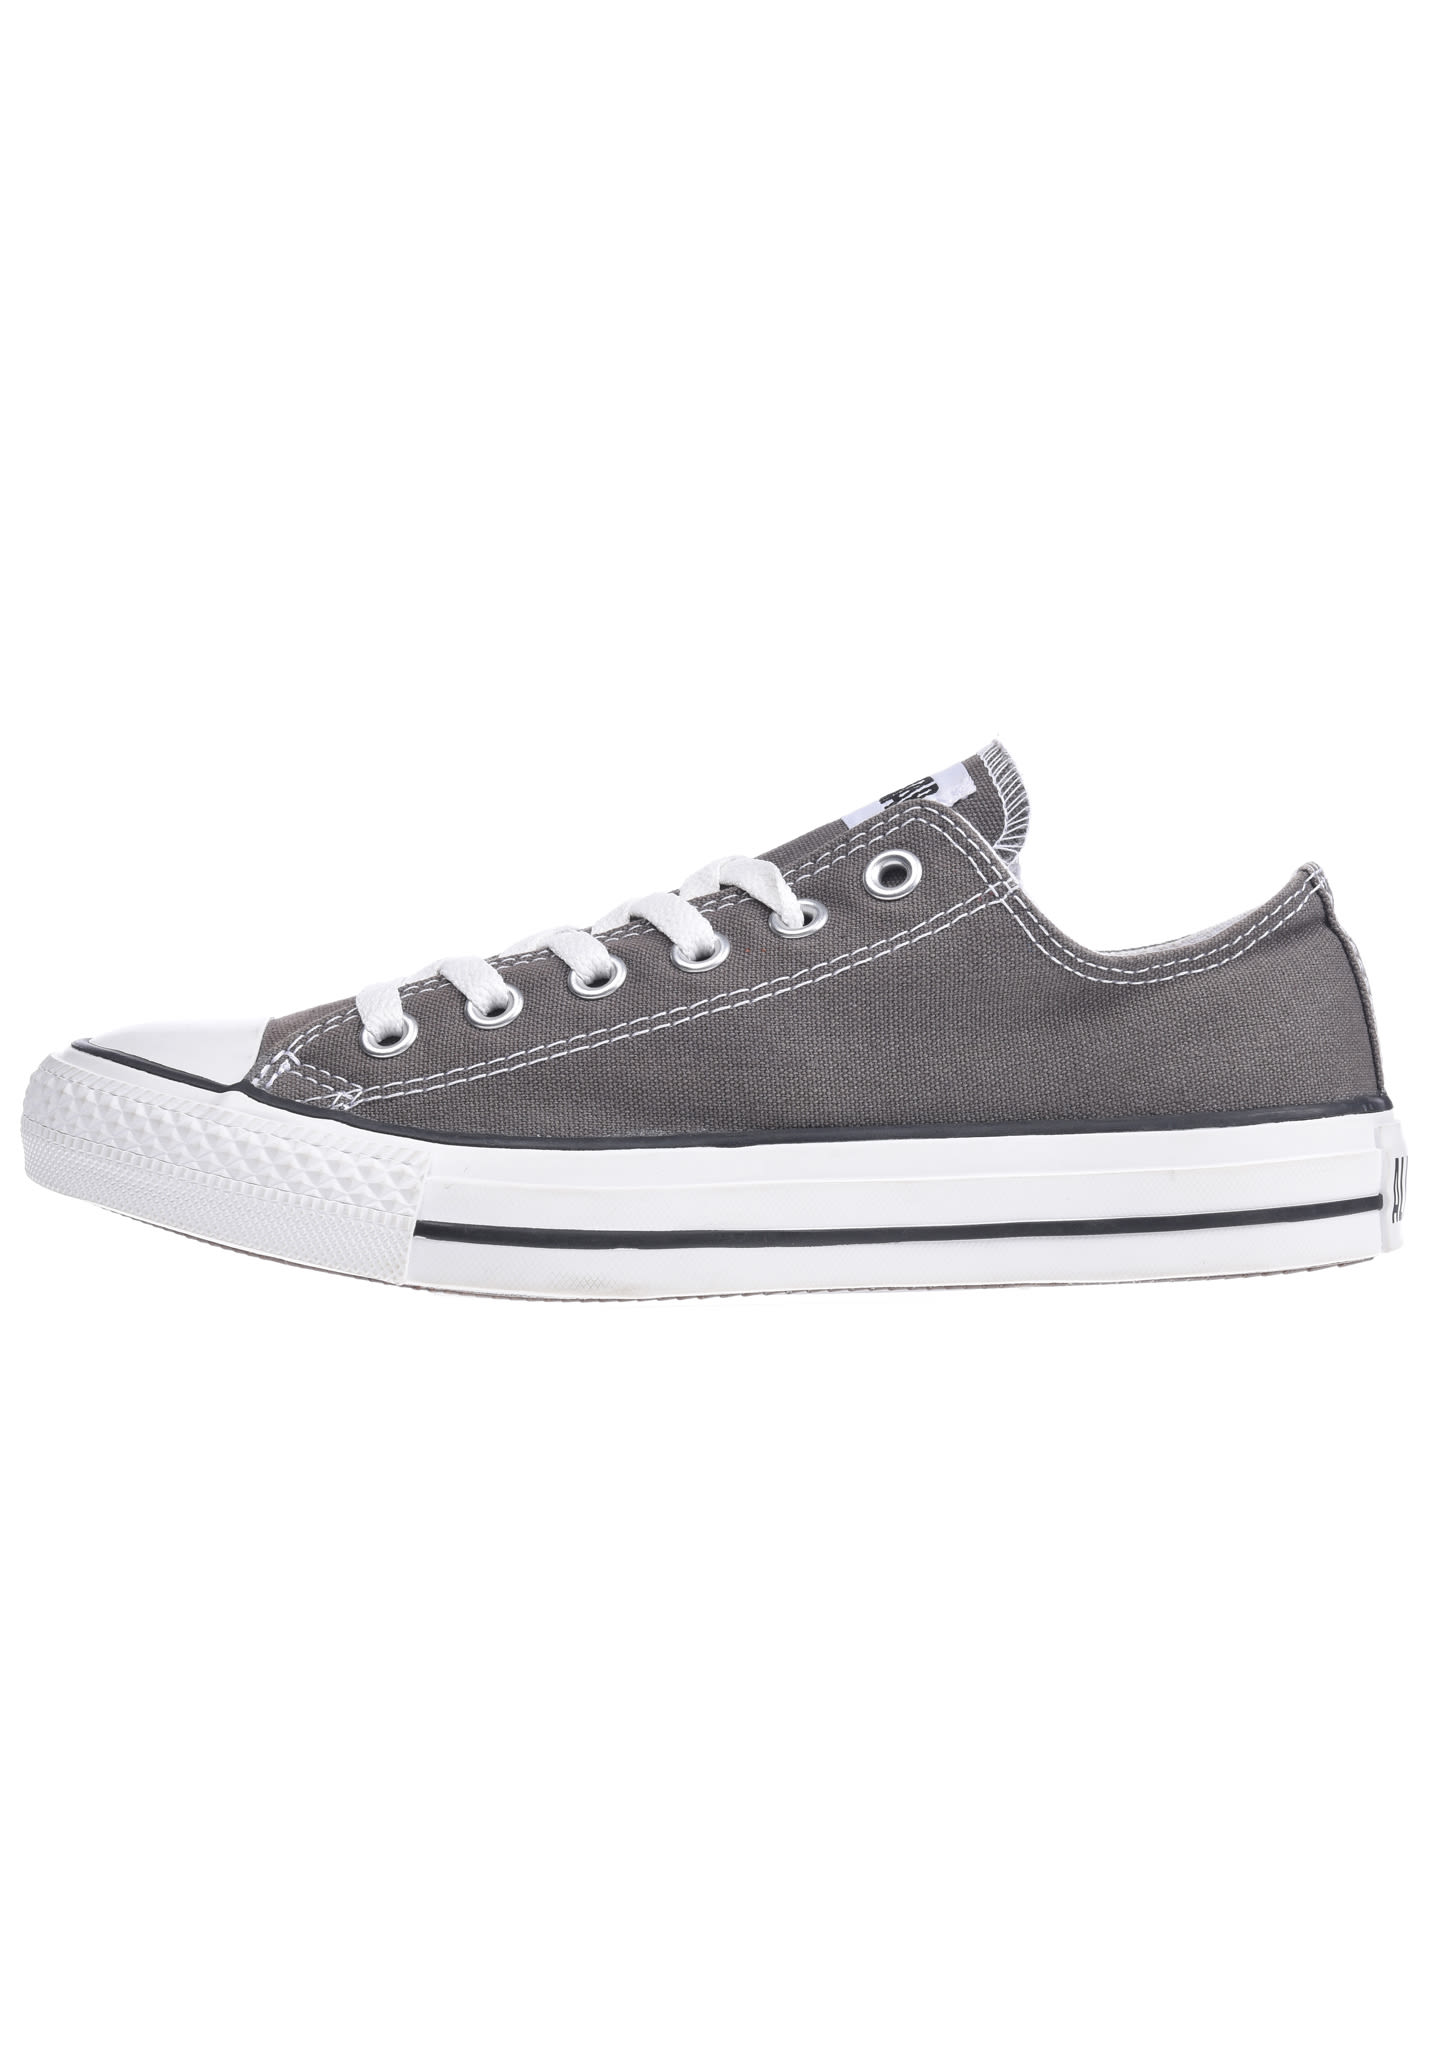 Converse Chuck Taylor All Star Seasonal Ox - Sneaker - Grau